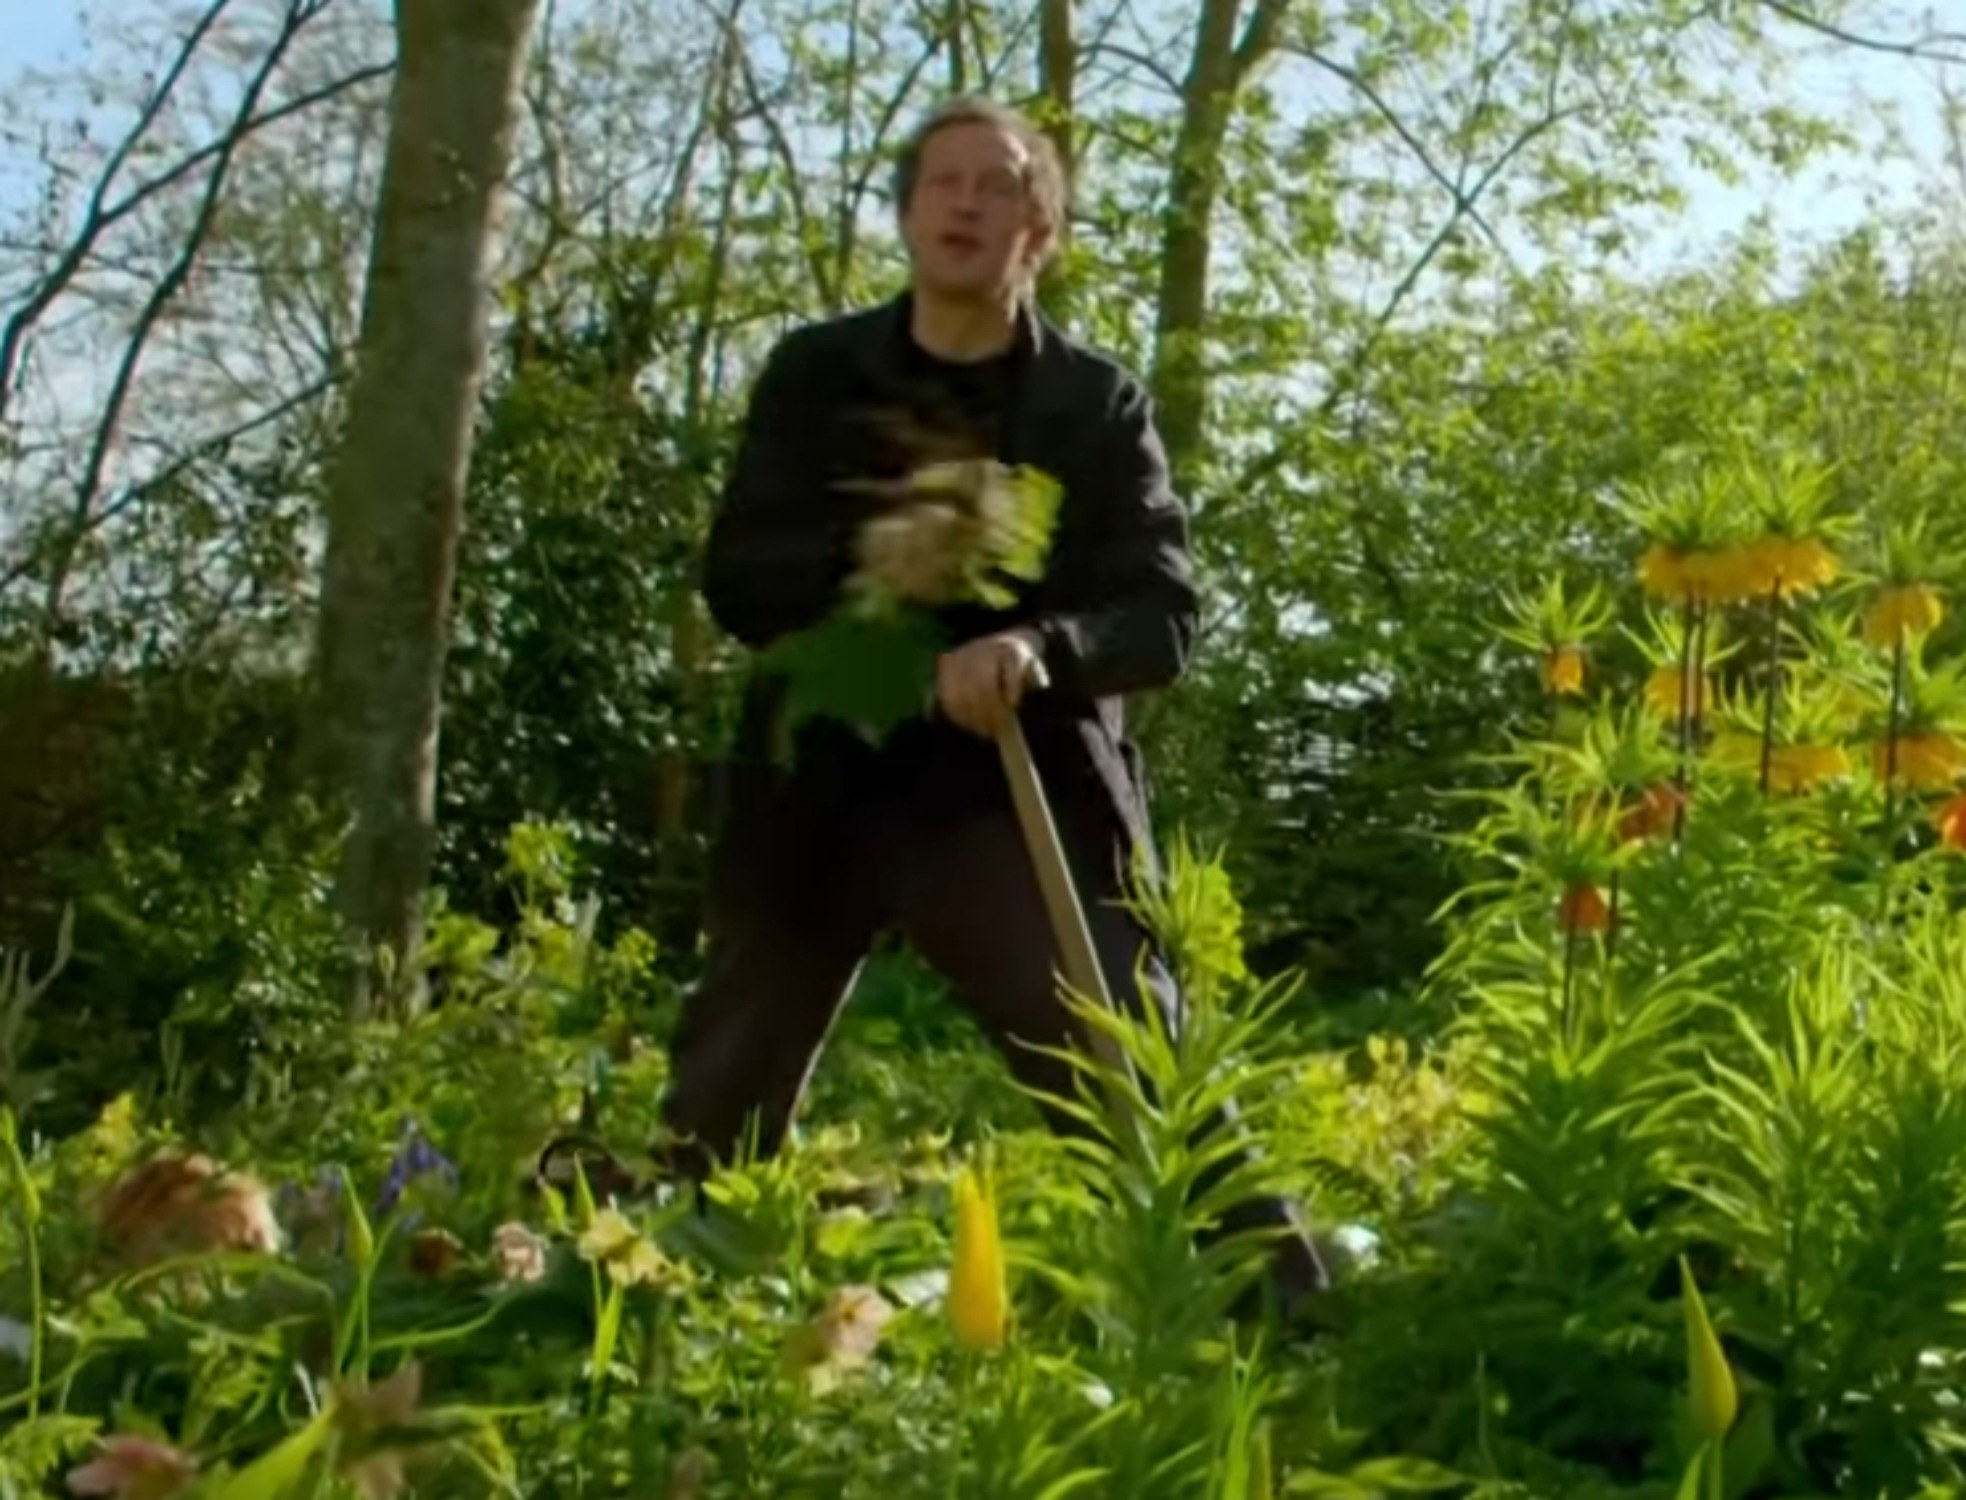 Gardeners' World 2017 – Episode 6 (April 14, 2017)